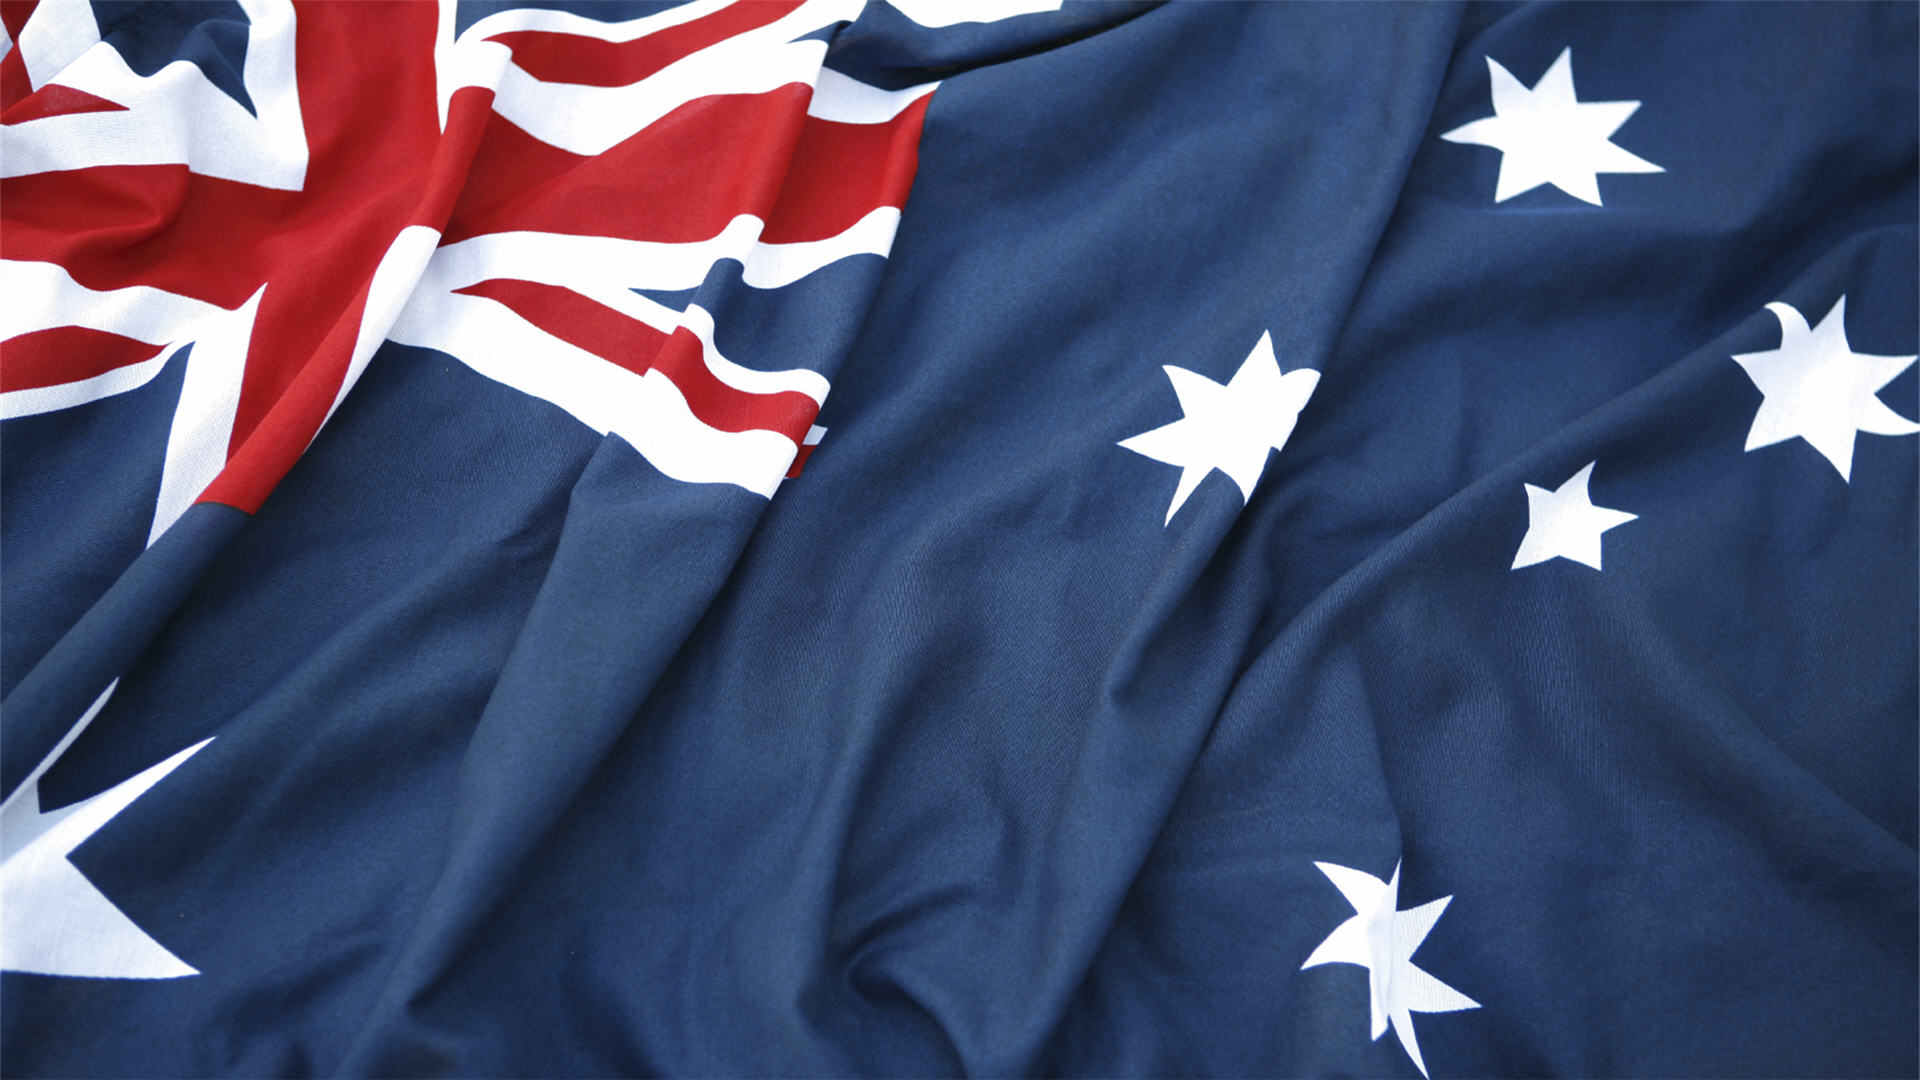 Australia Flag HD Wallpaper Background Images 1920x1080